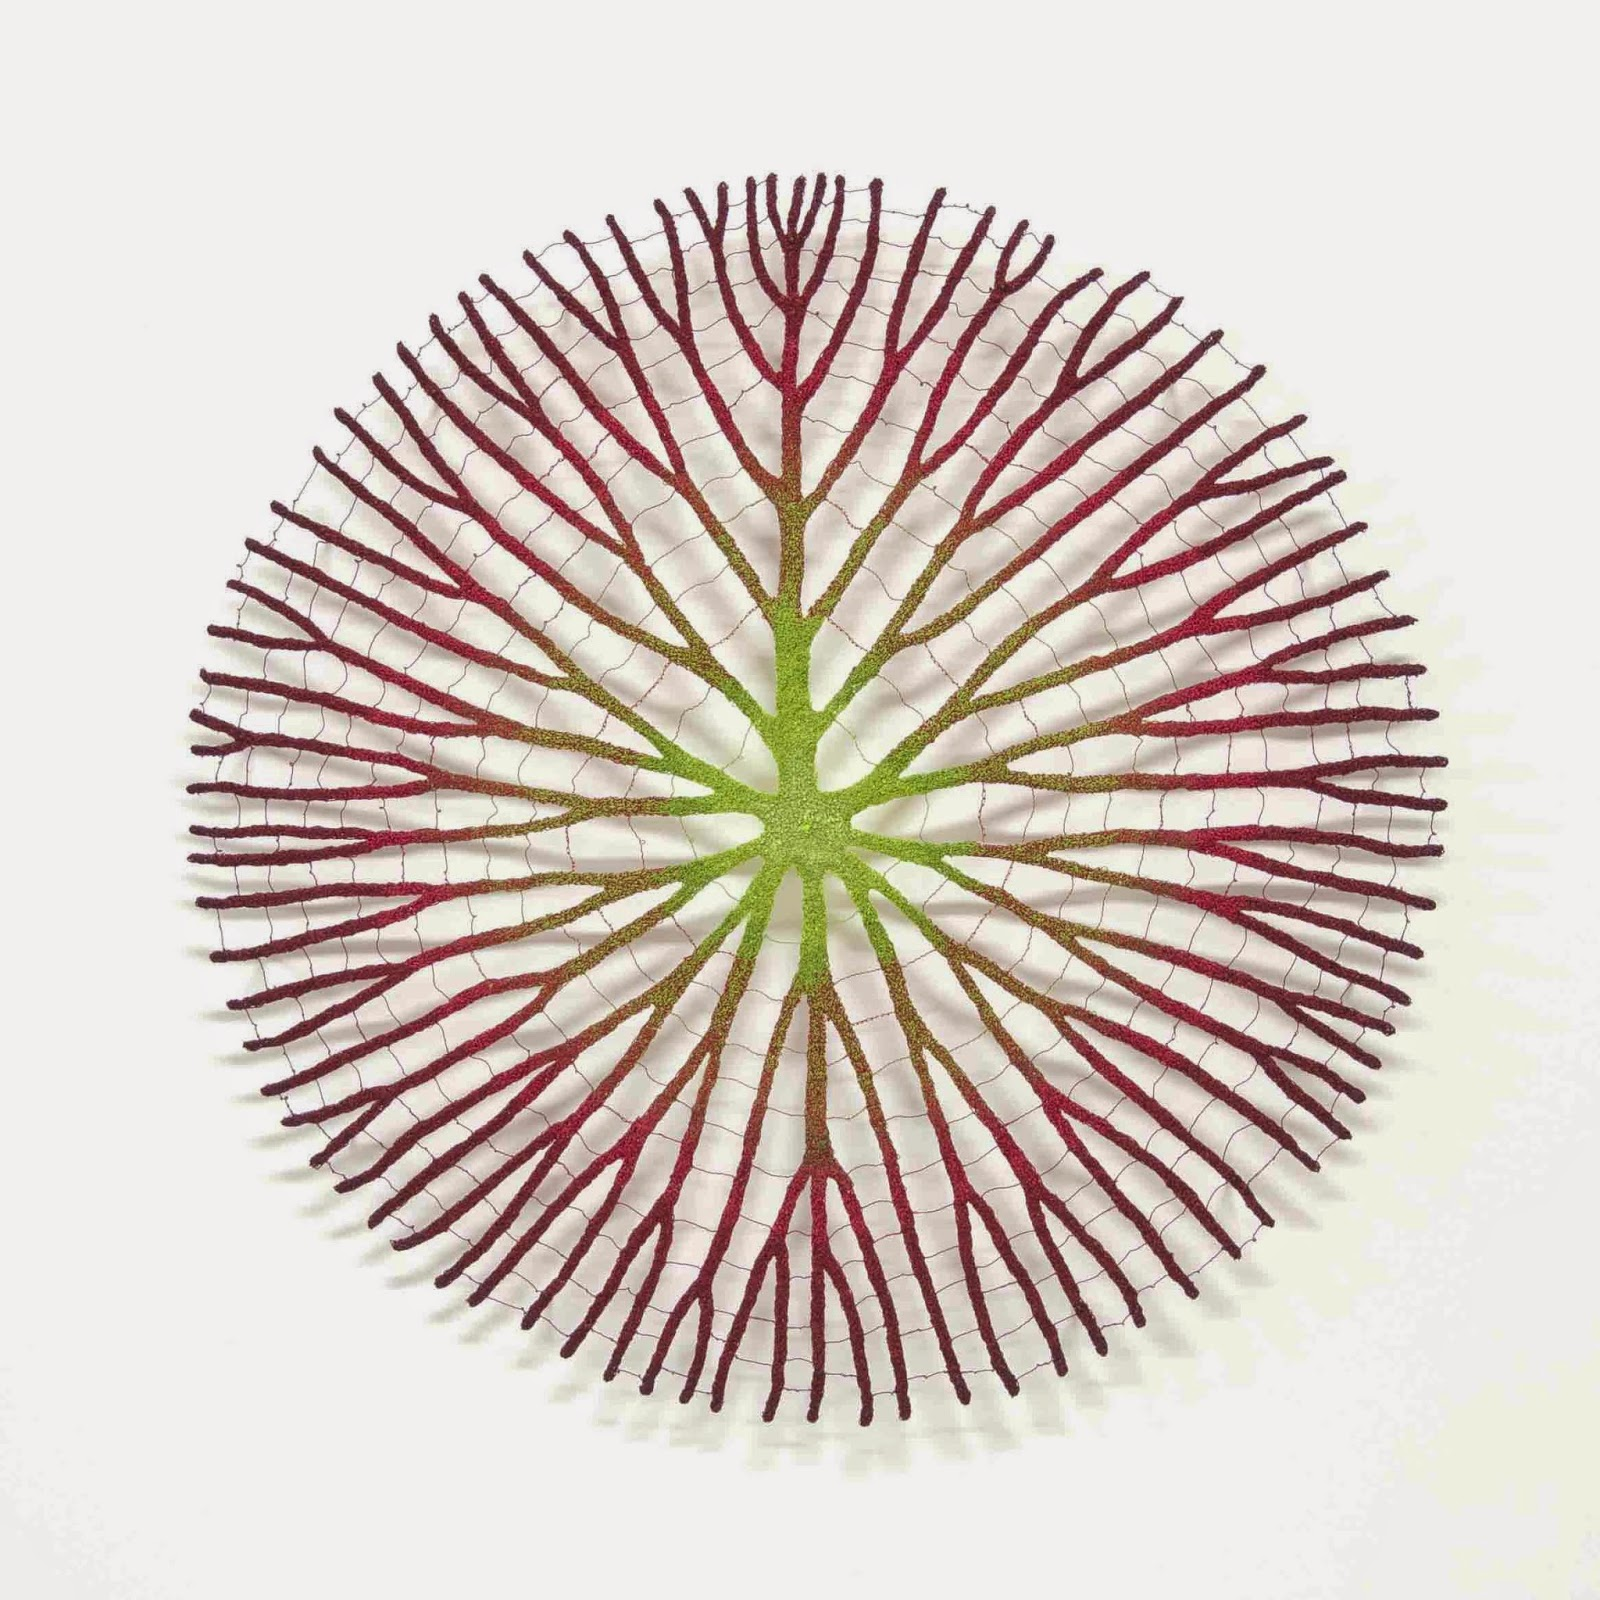 'Amazonian water lily' - Meredith Woolnough